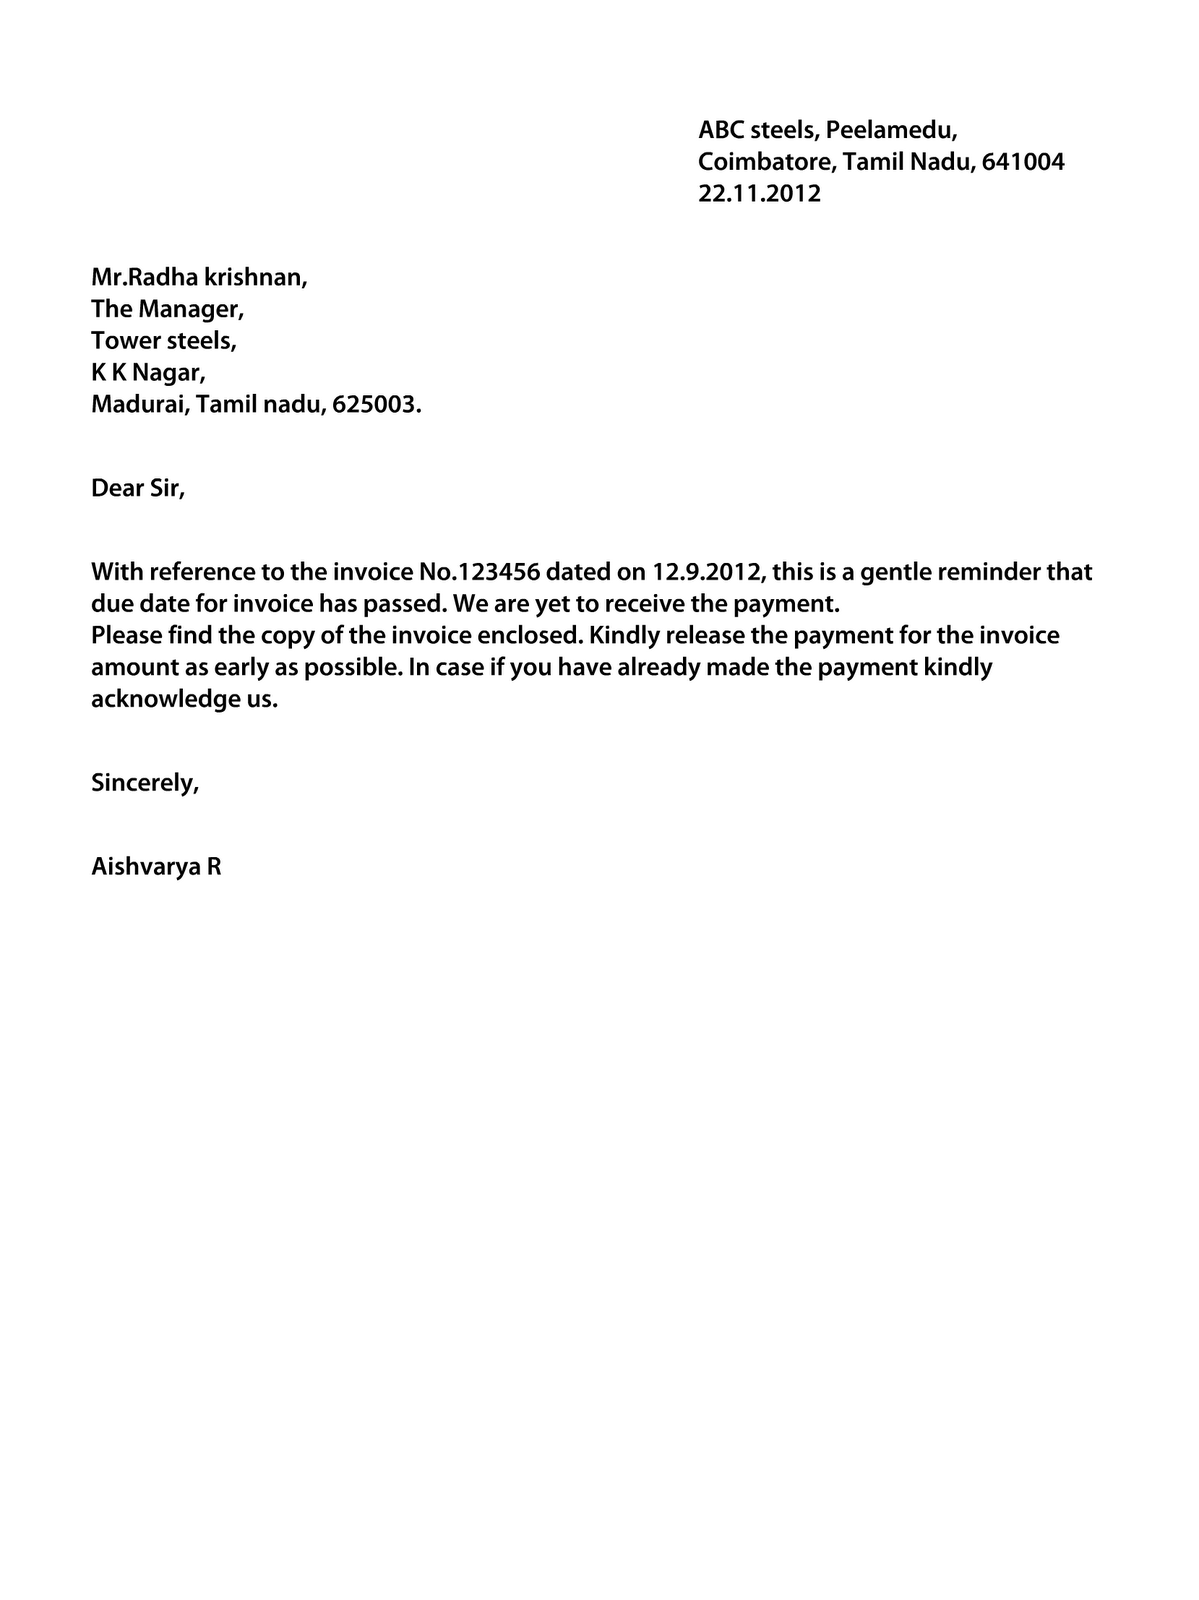 Dollar Price Letter Regarding Outstanding Payment